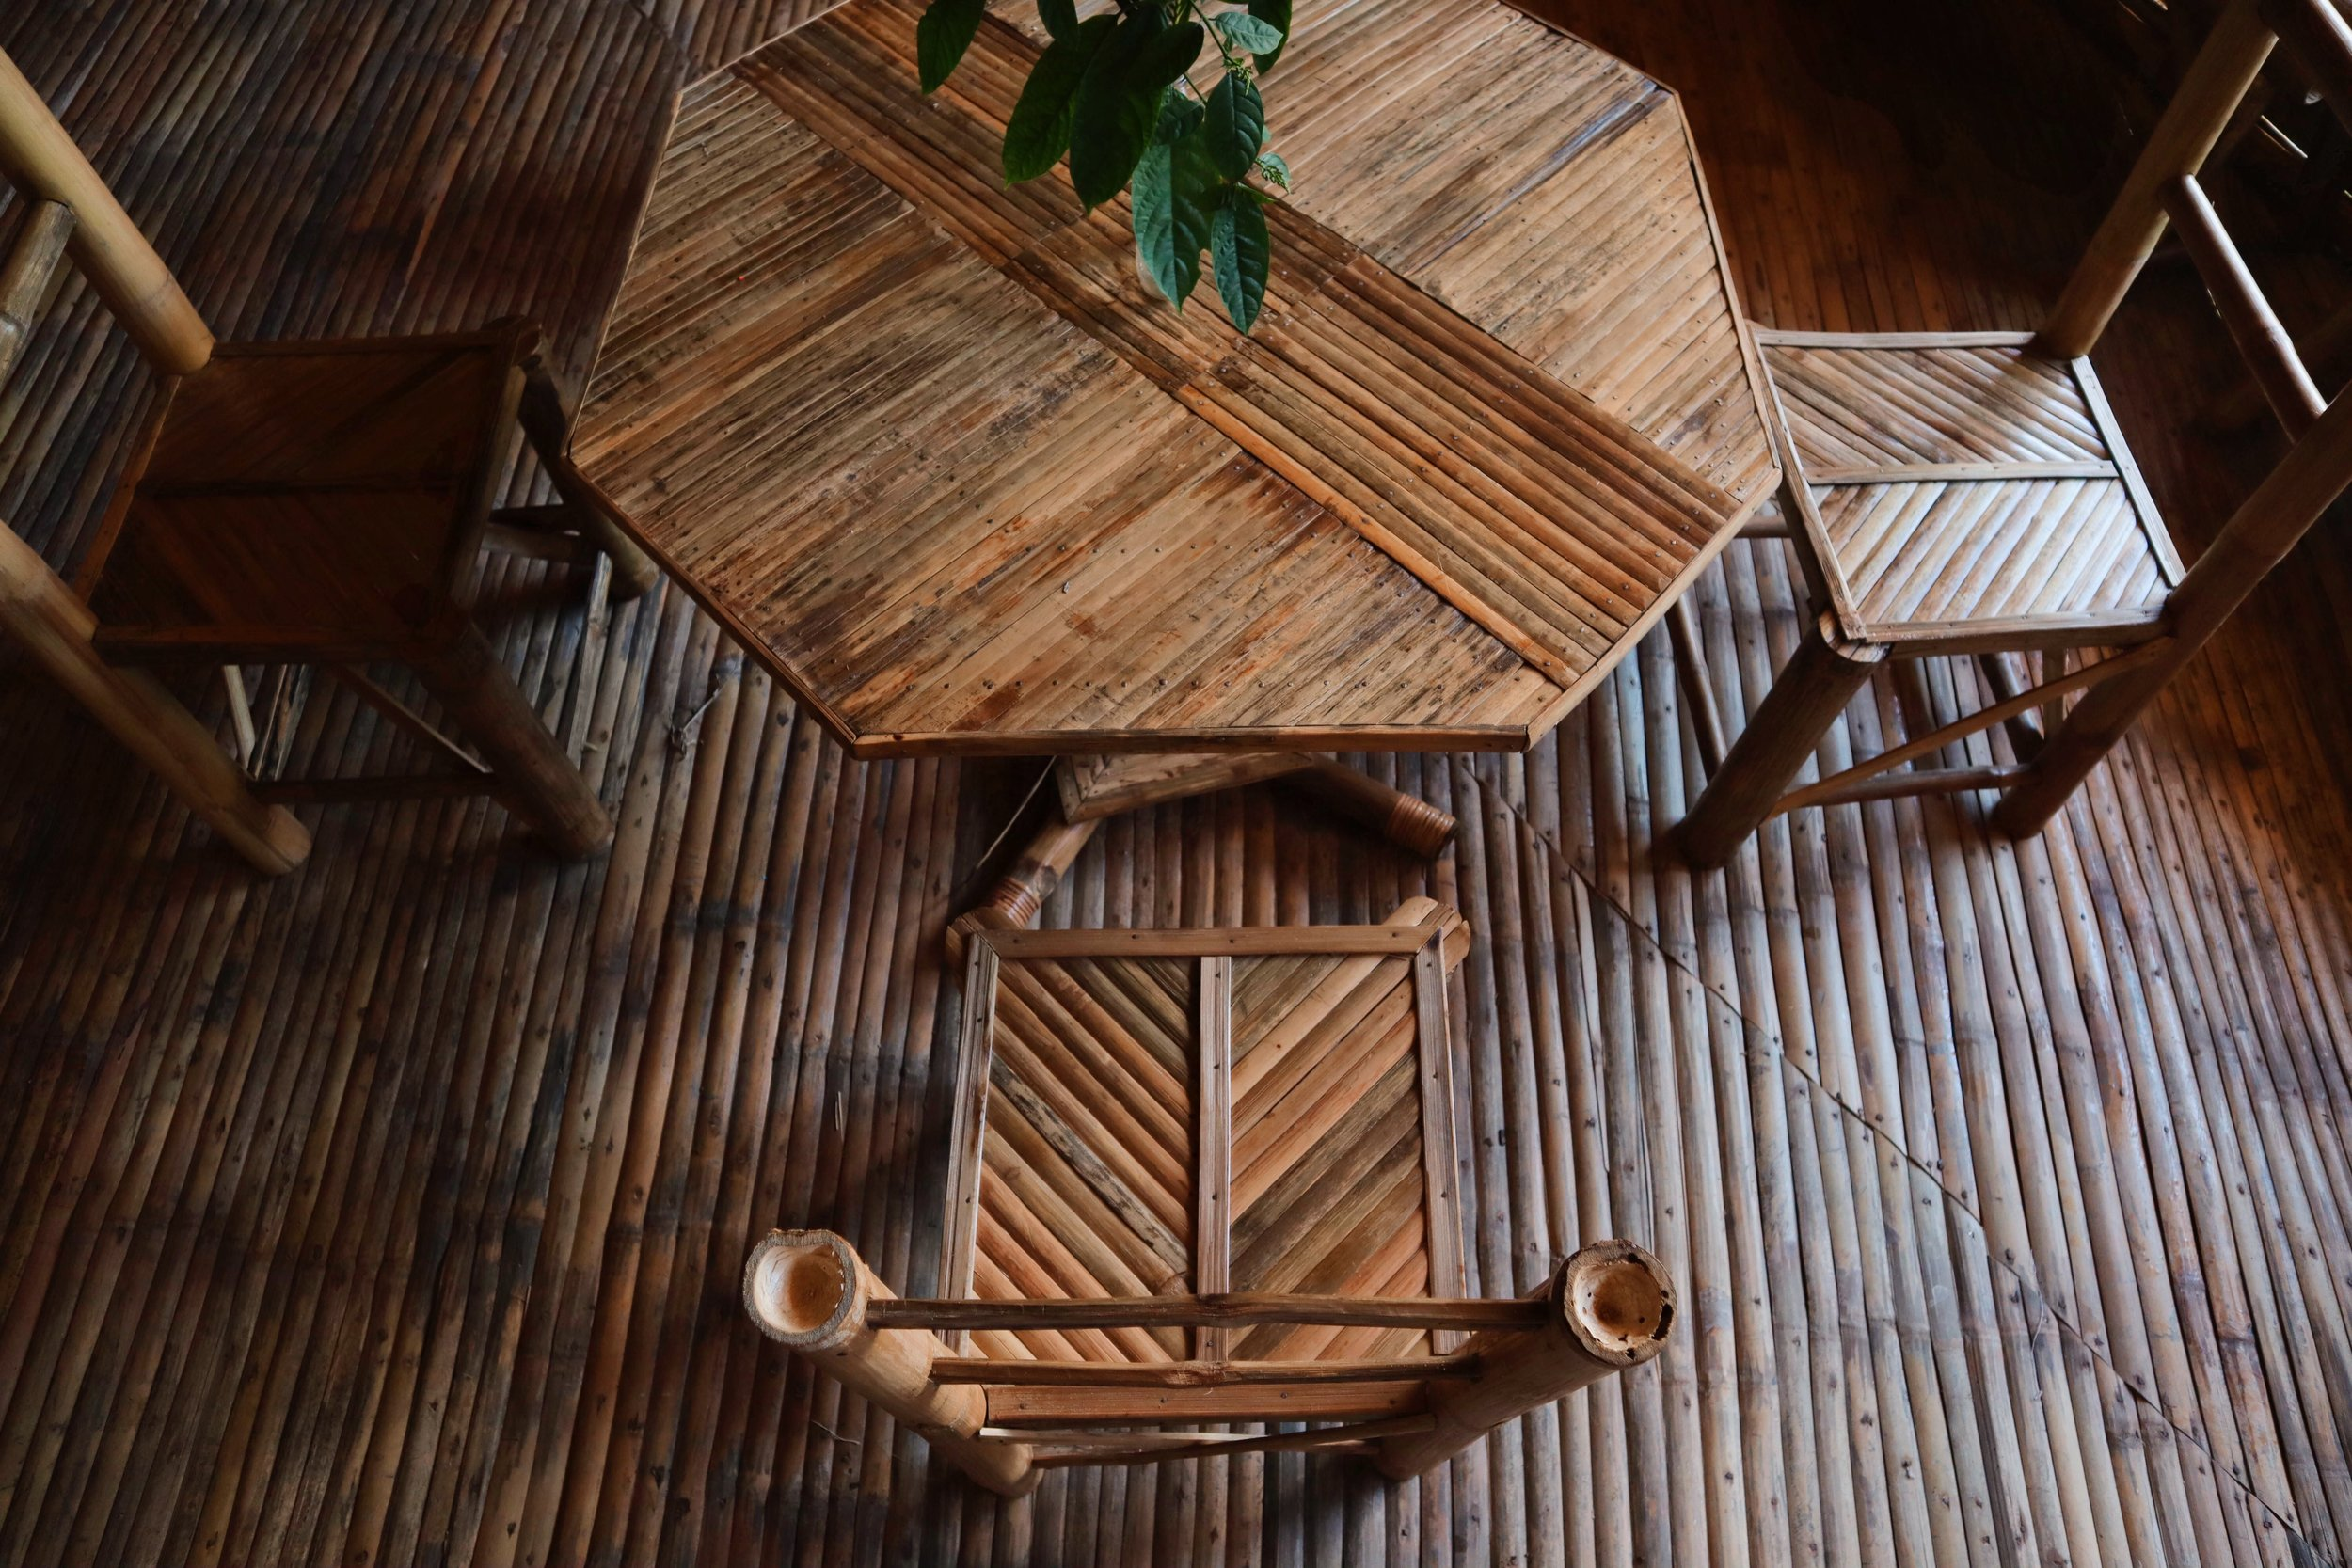 Bamboo Handcrafted Furniture